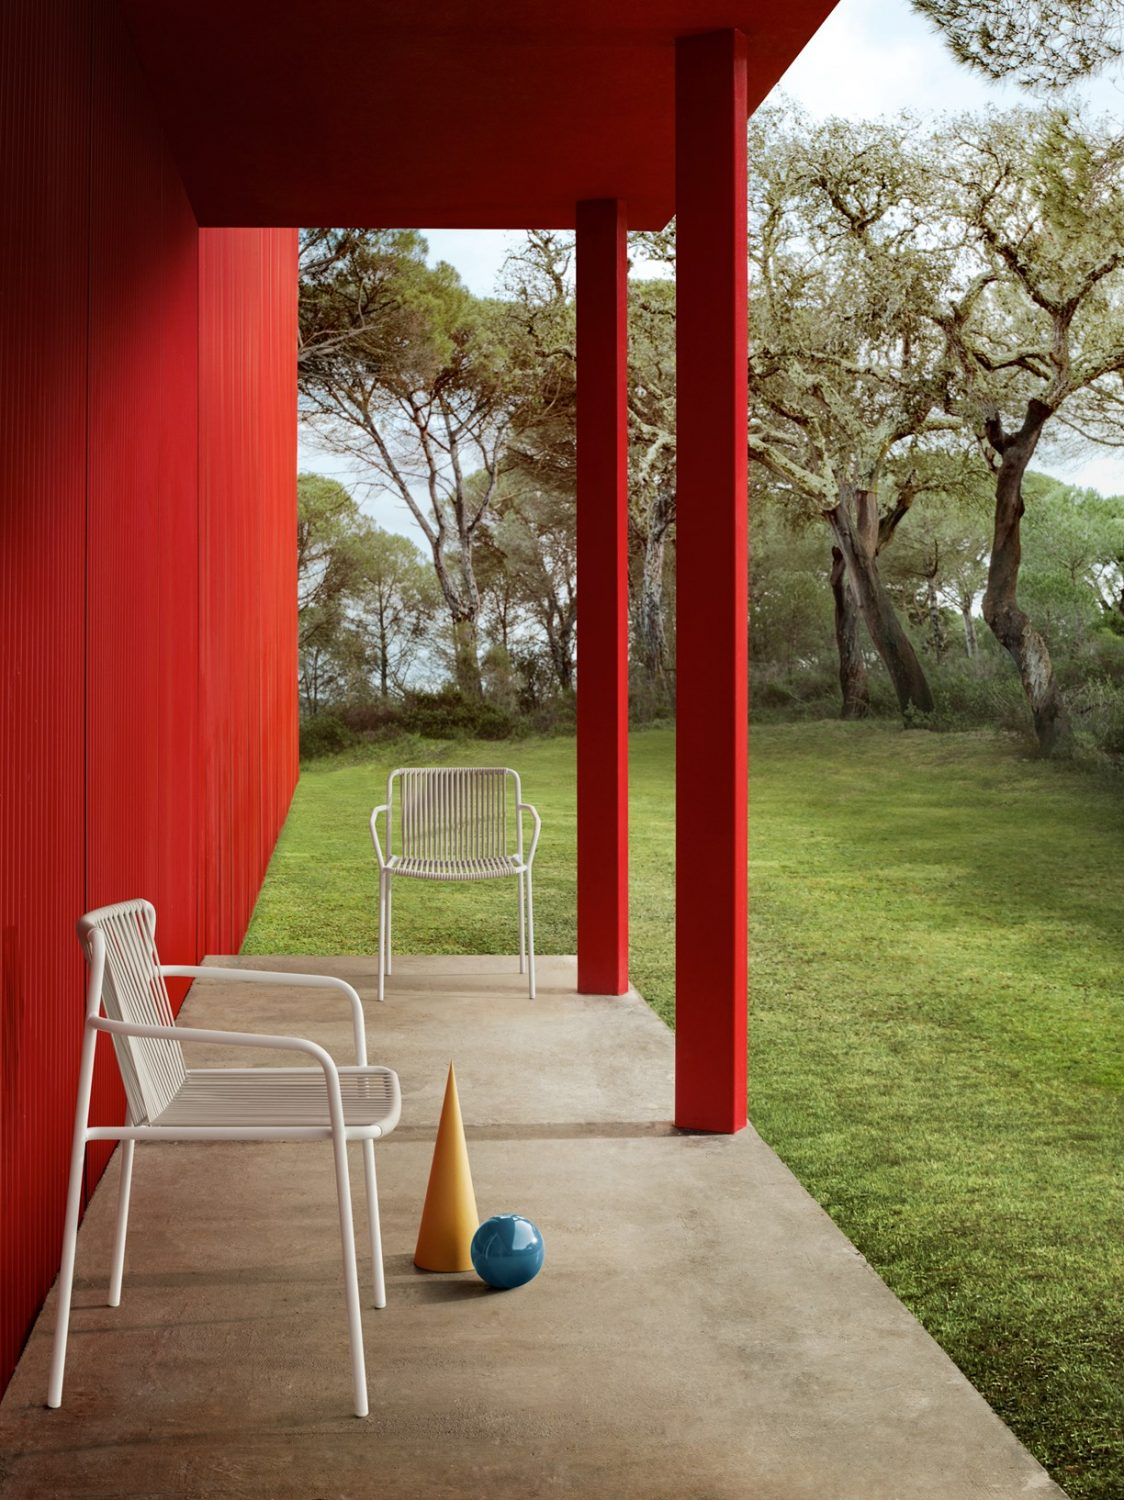 Fall In Love With Pedrali's New Indoor And Outdoor Collection pedrali Fall In Love With Pedrali's New Indoor And Outdoor Collection fall love pedralis new indoor outdoor collection 2 scaled